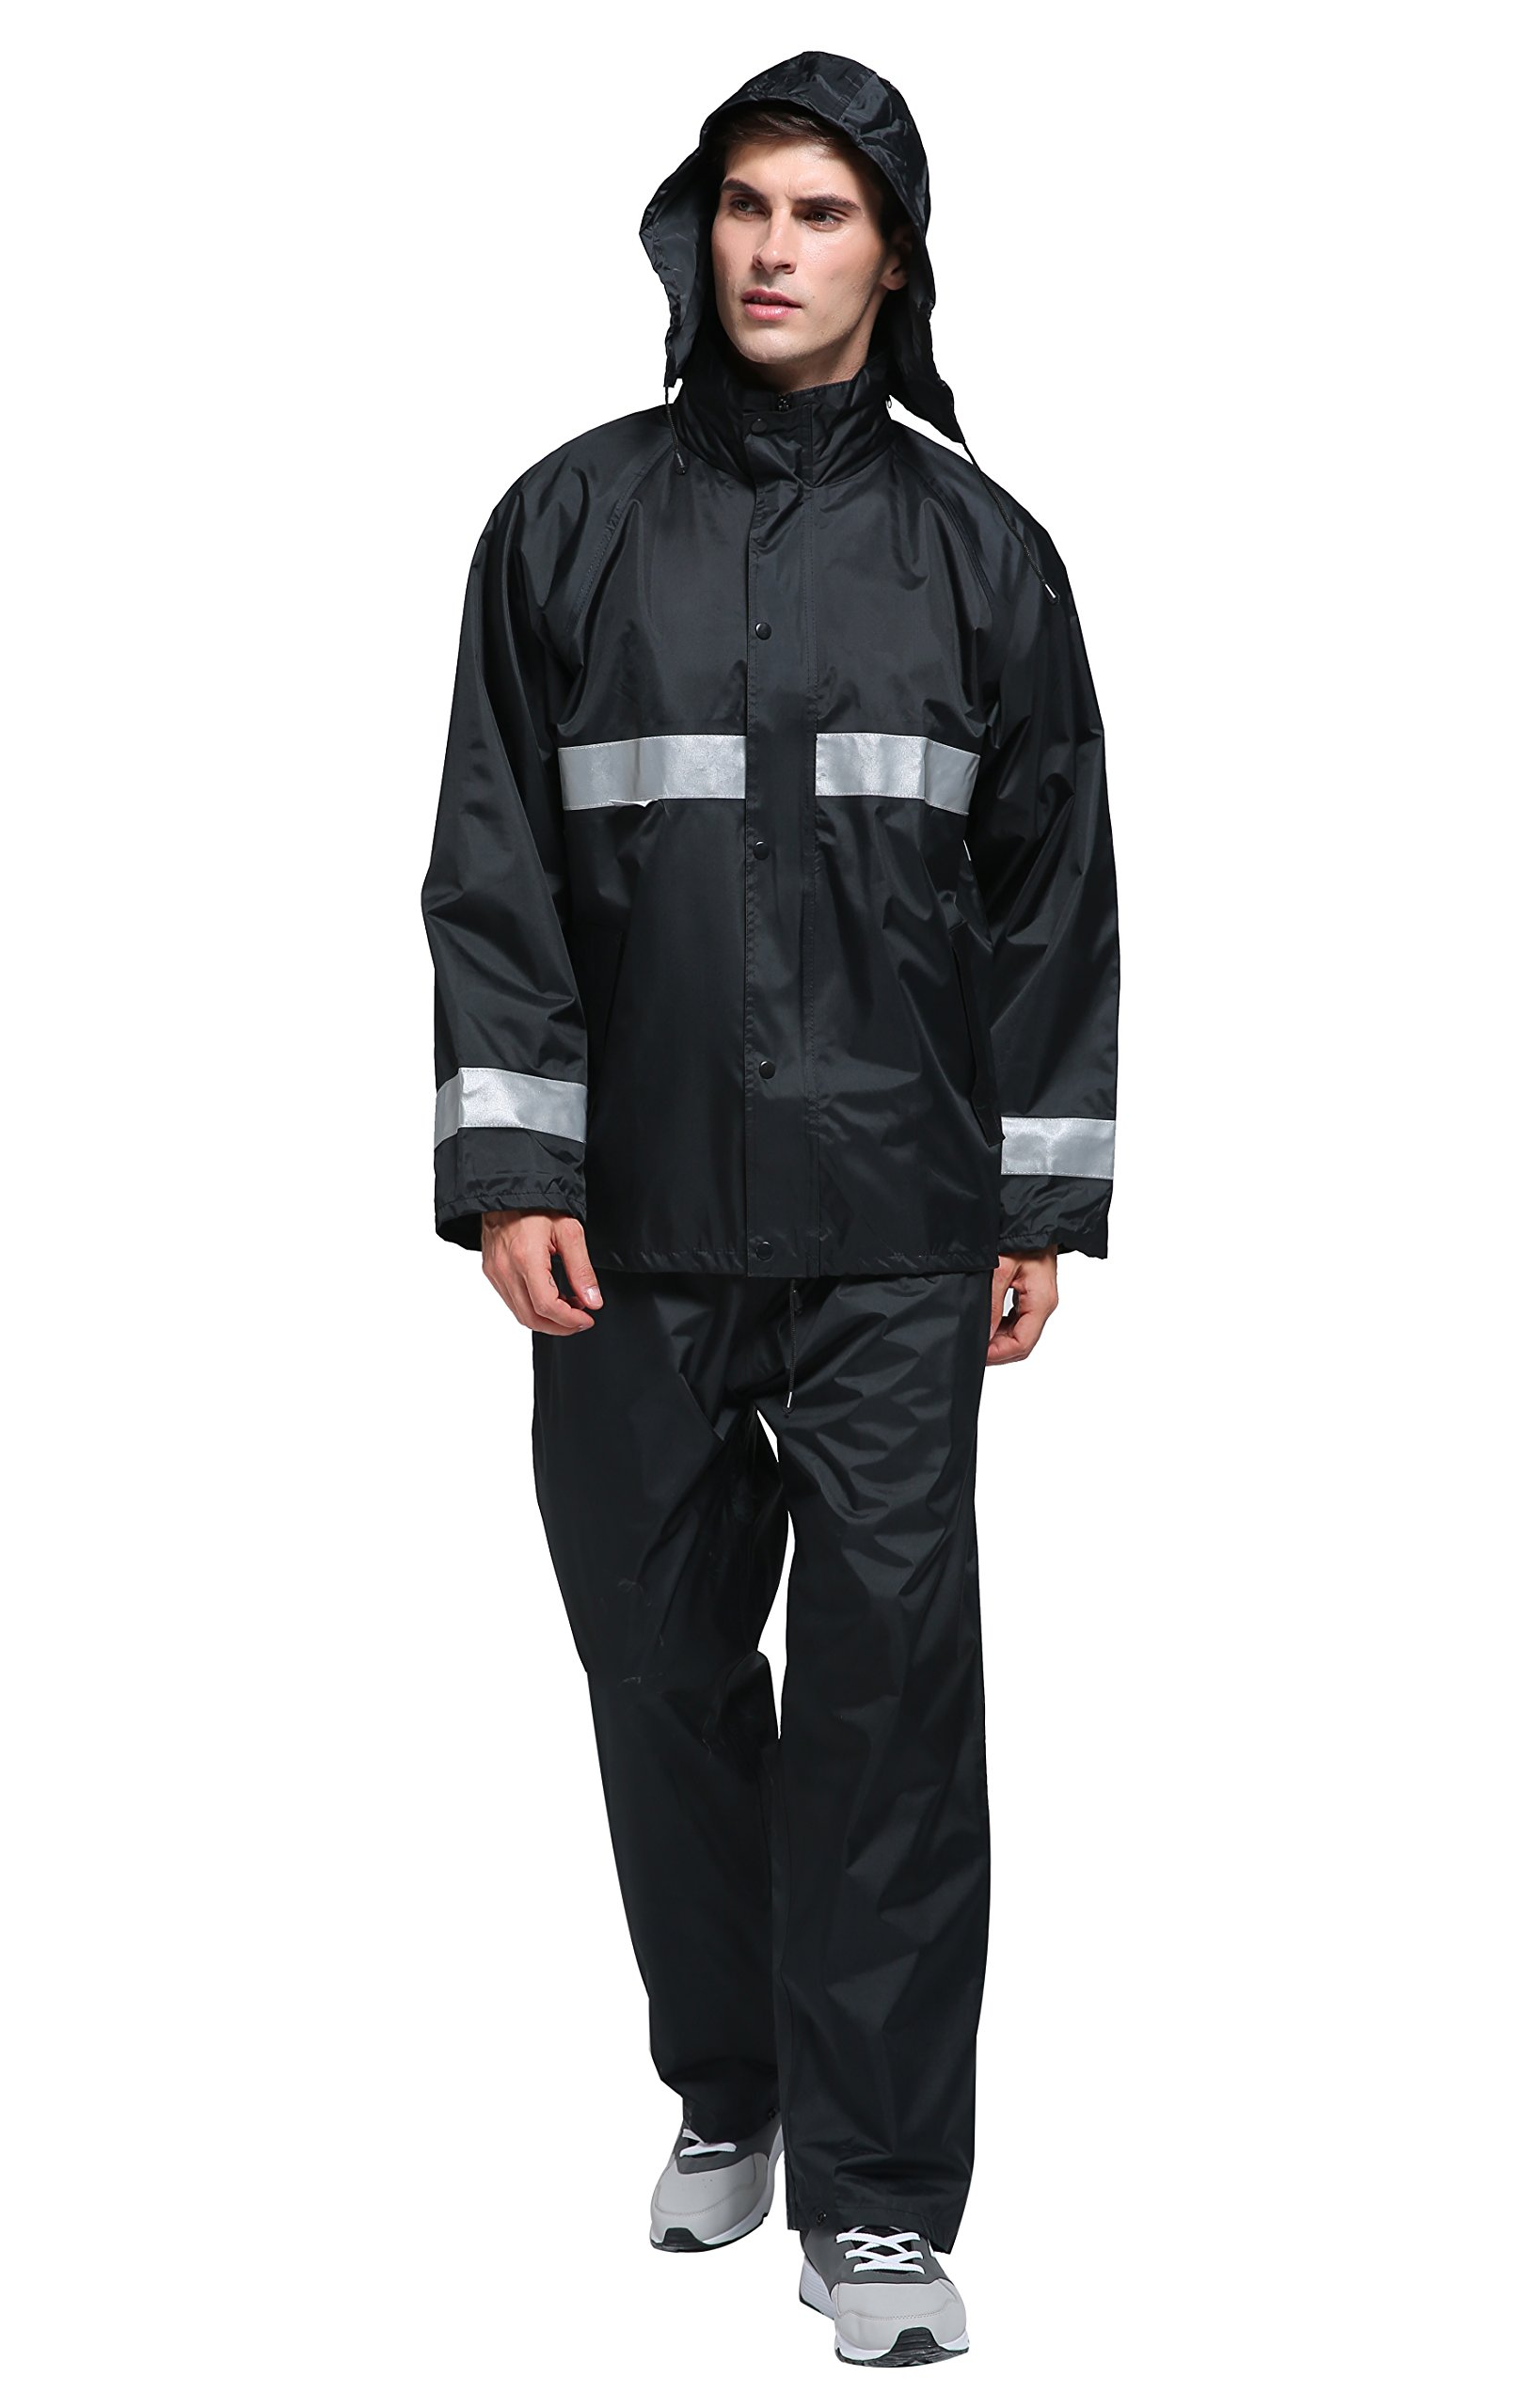 Maiyu Motorcycle Rain Suit Waterproof Rain Jacket and Pants Set 2 Piece Rain Gear For Adult by Maiyu (Image #2)